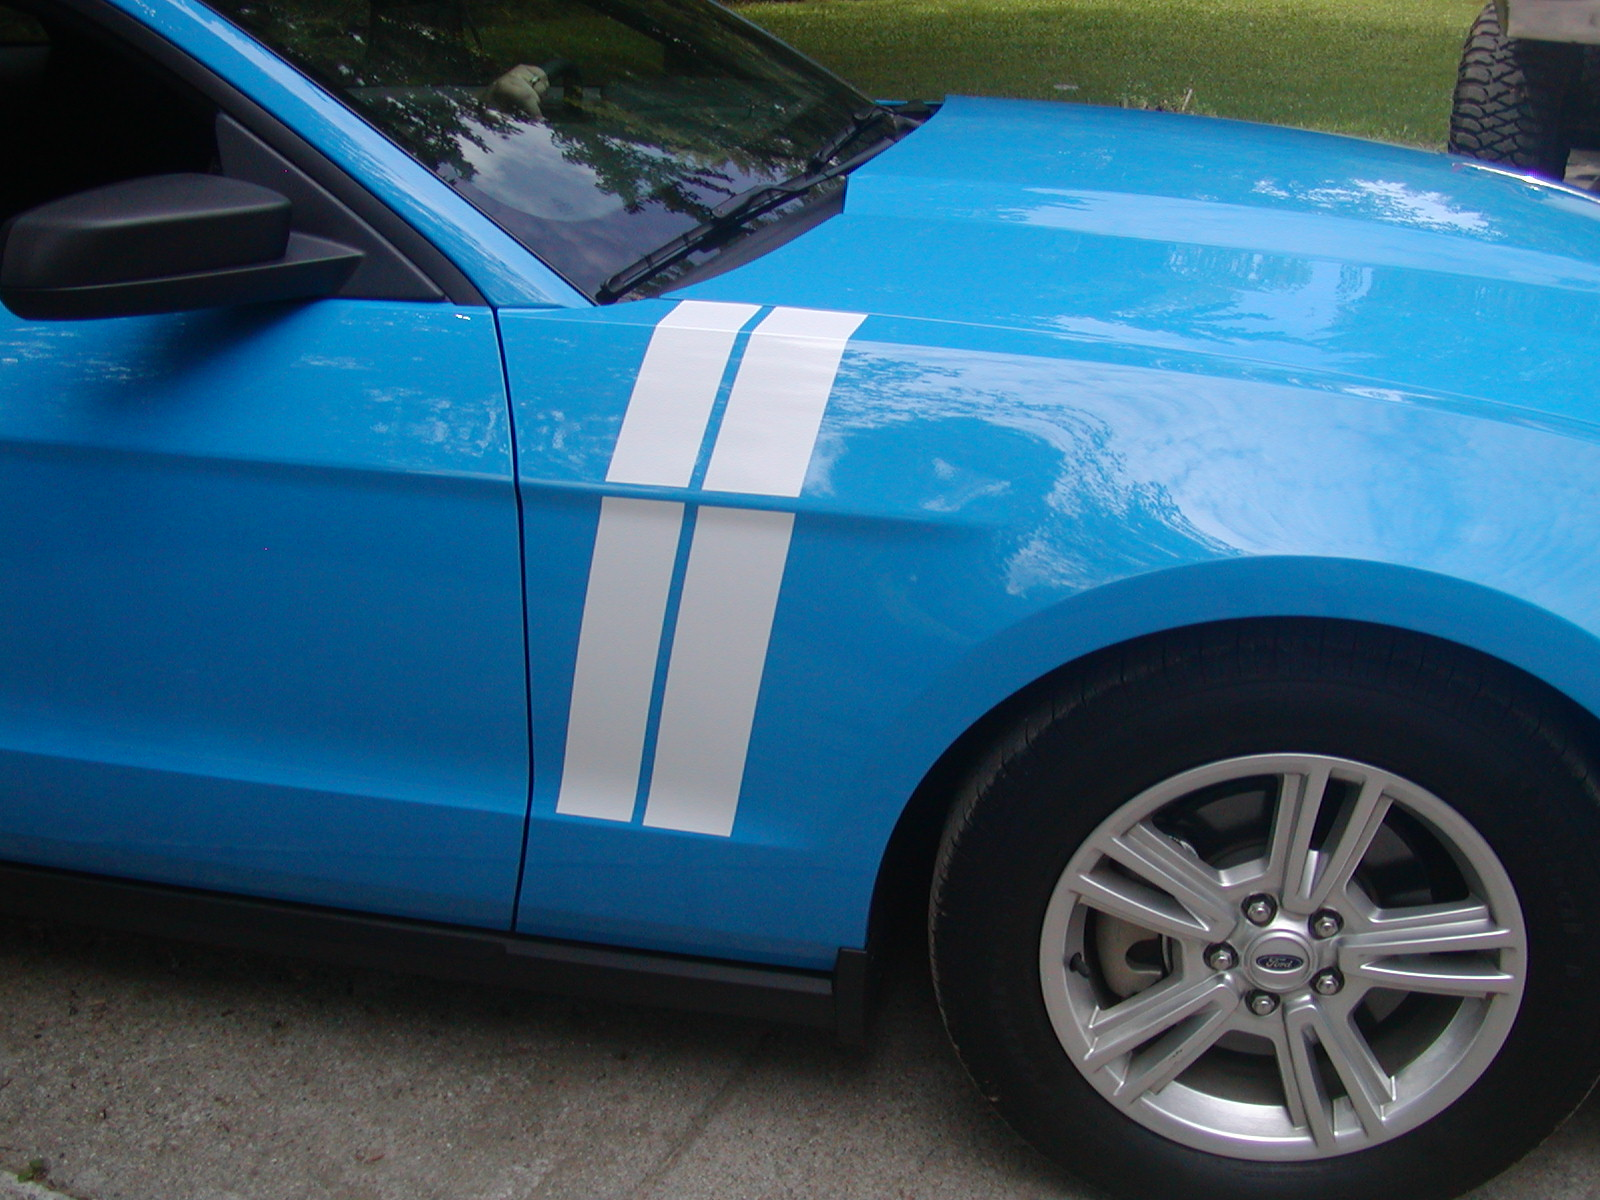 2010 - 2011 - 2012 Mustang Long Hash Mark Stripes